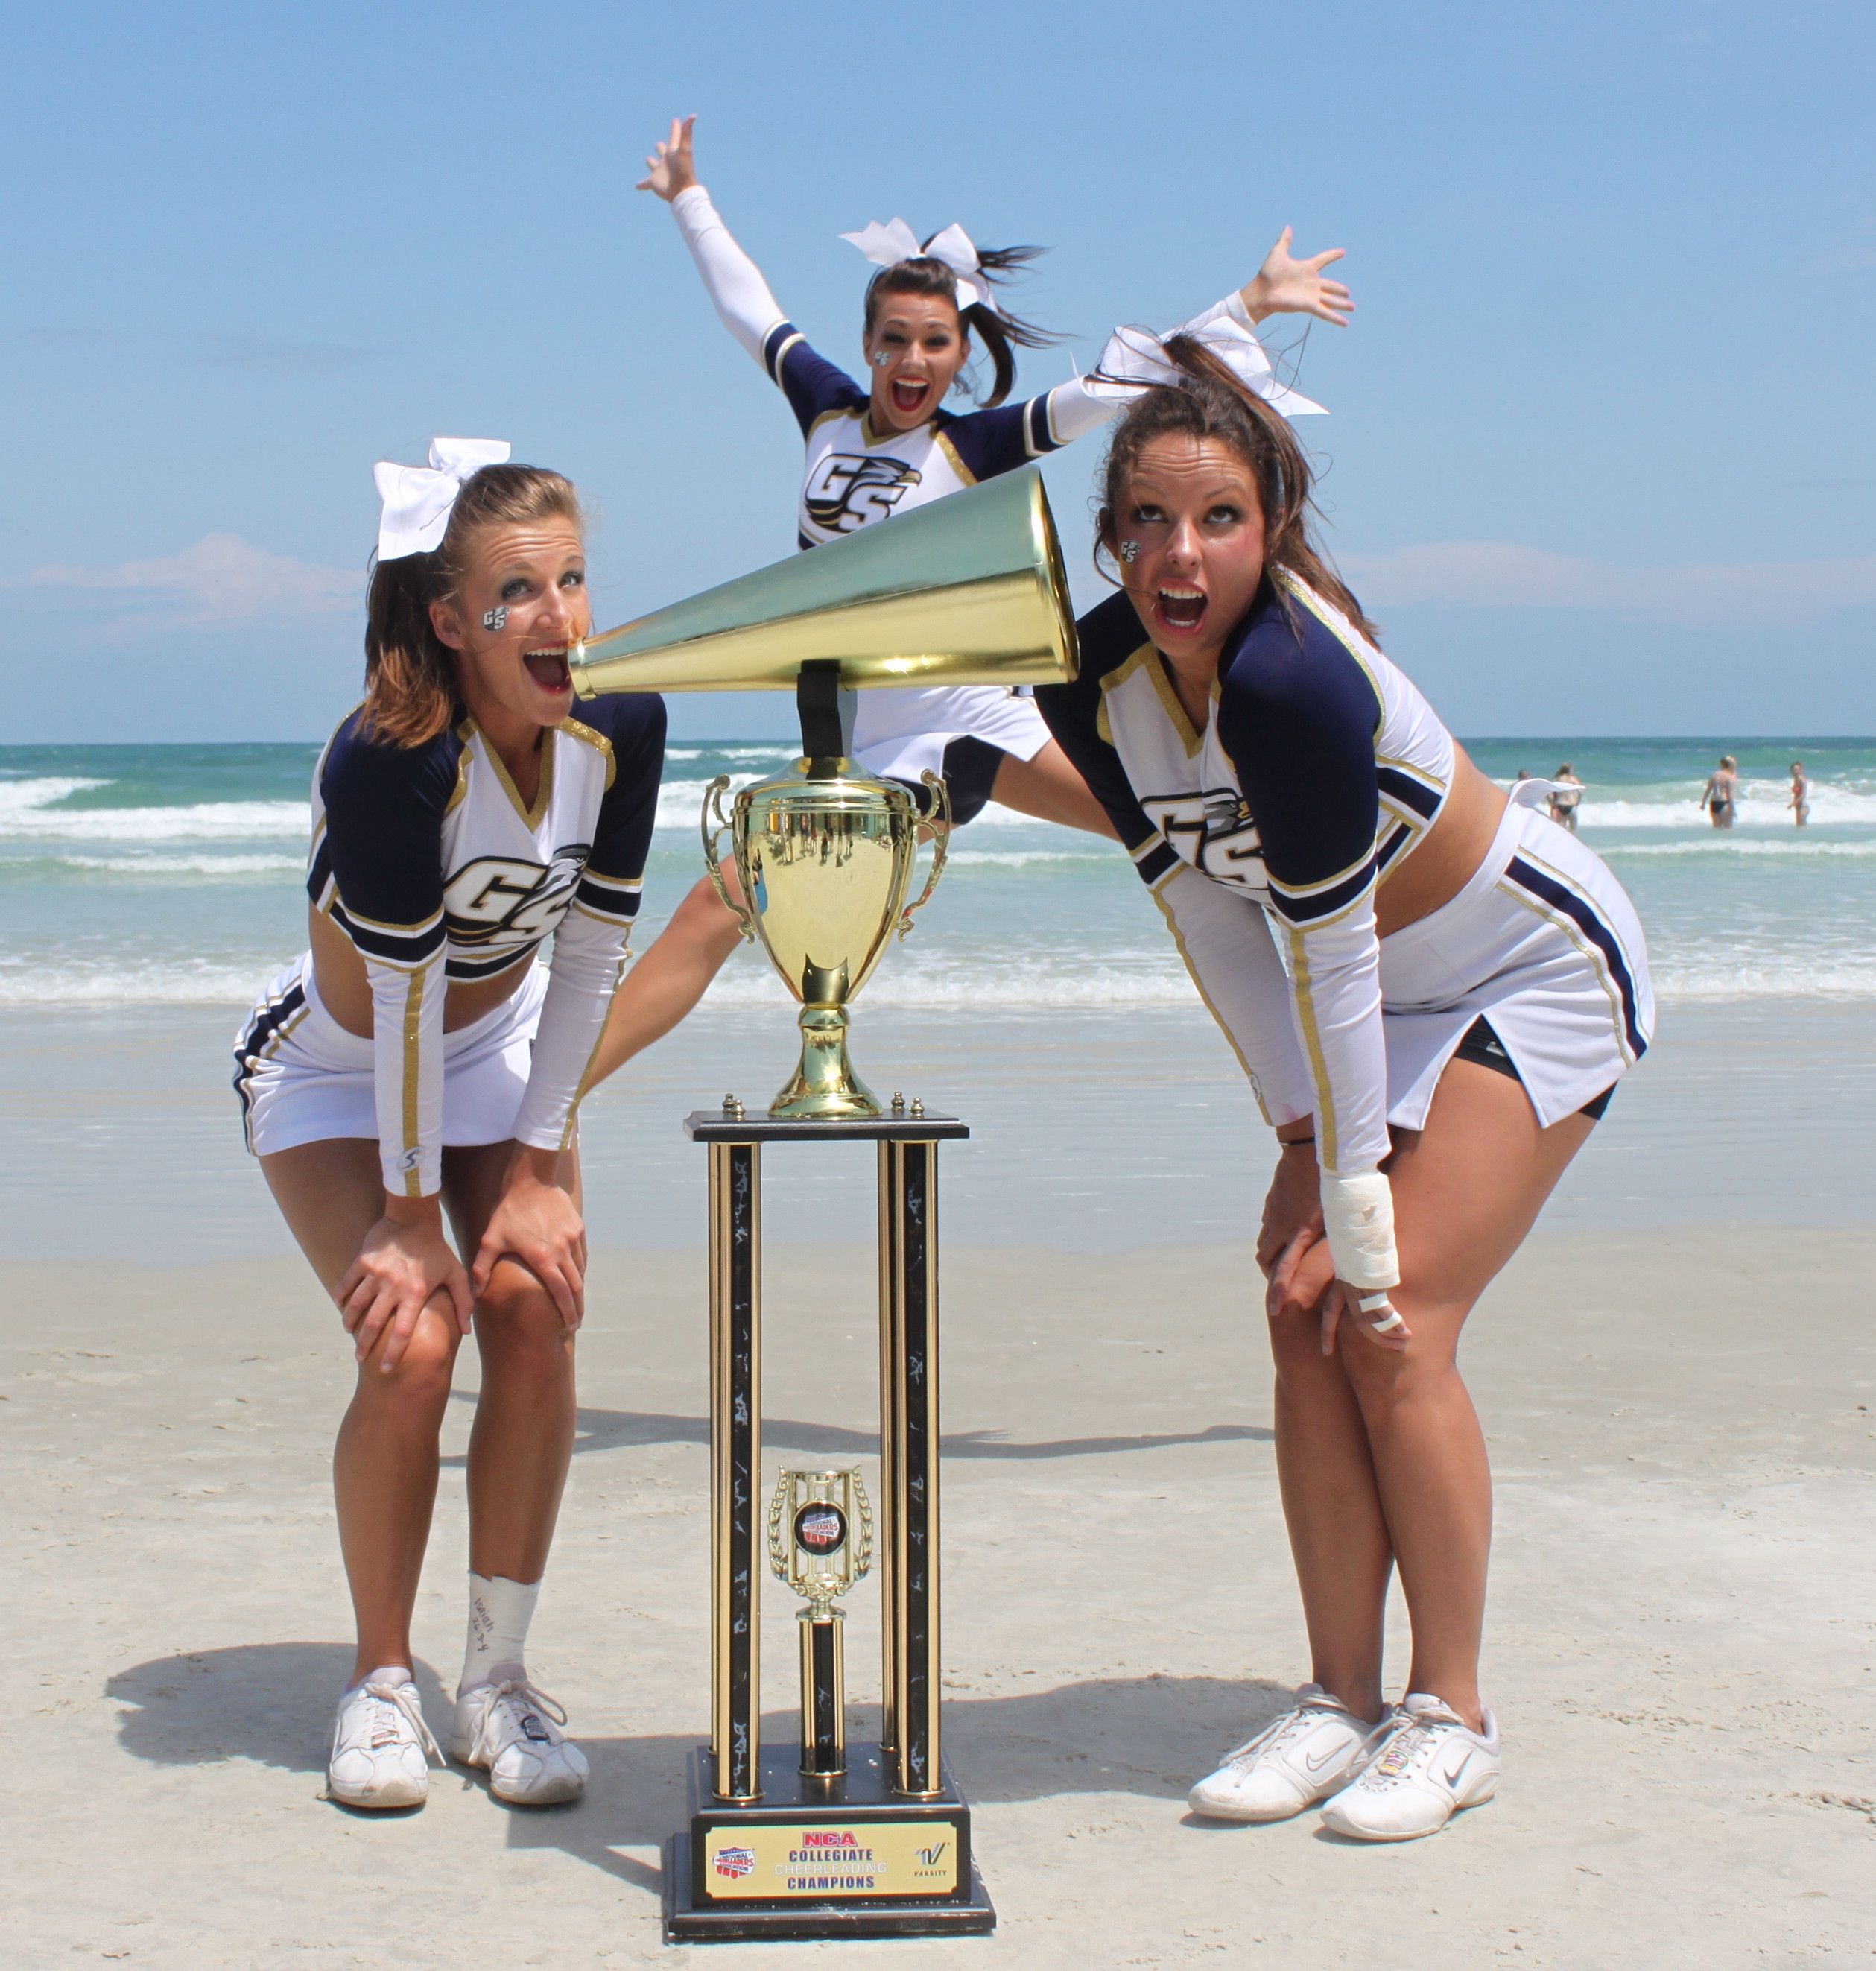 After Winning The Nca National Championship 2012 Kayla Kristen And Rachel Georgia Southern Southern Girl Style Georgia Southern Georgia Southern University